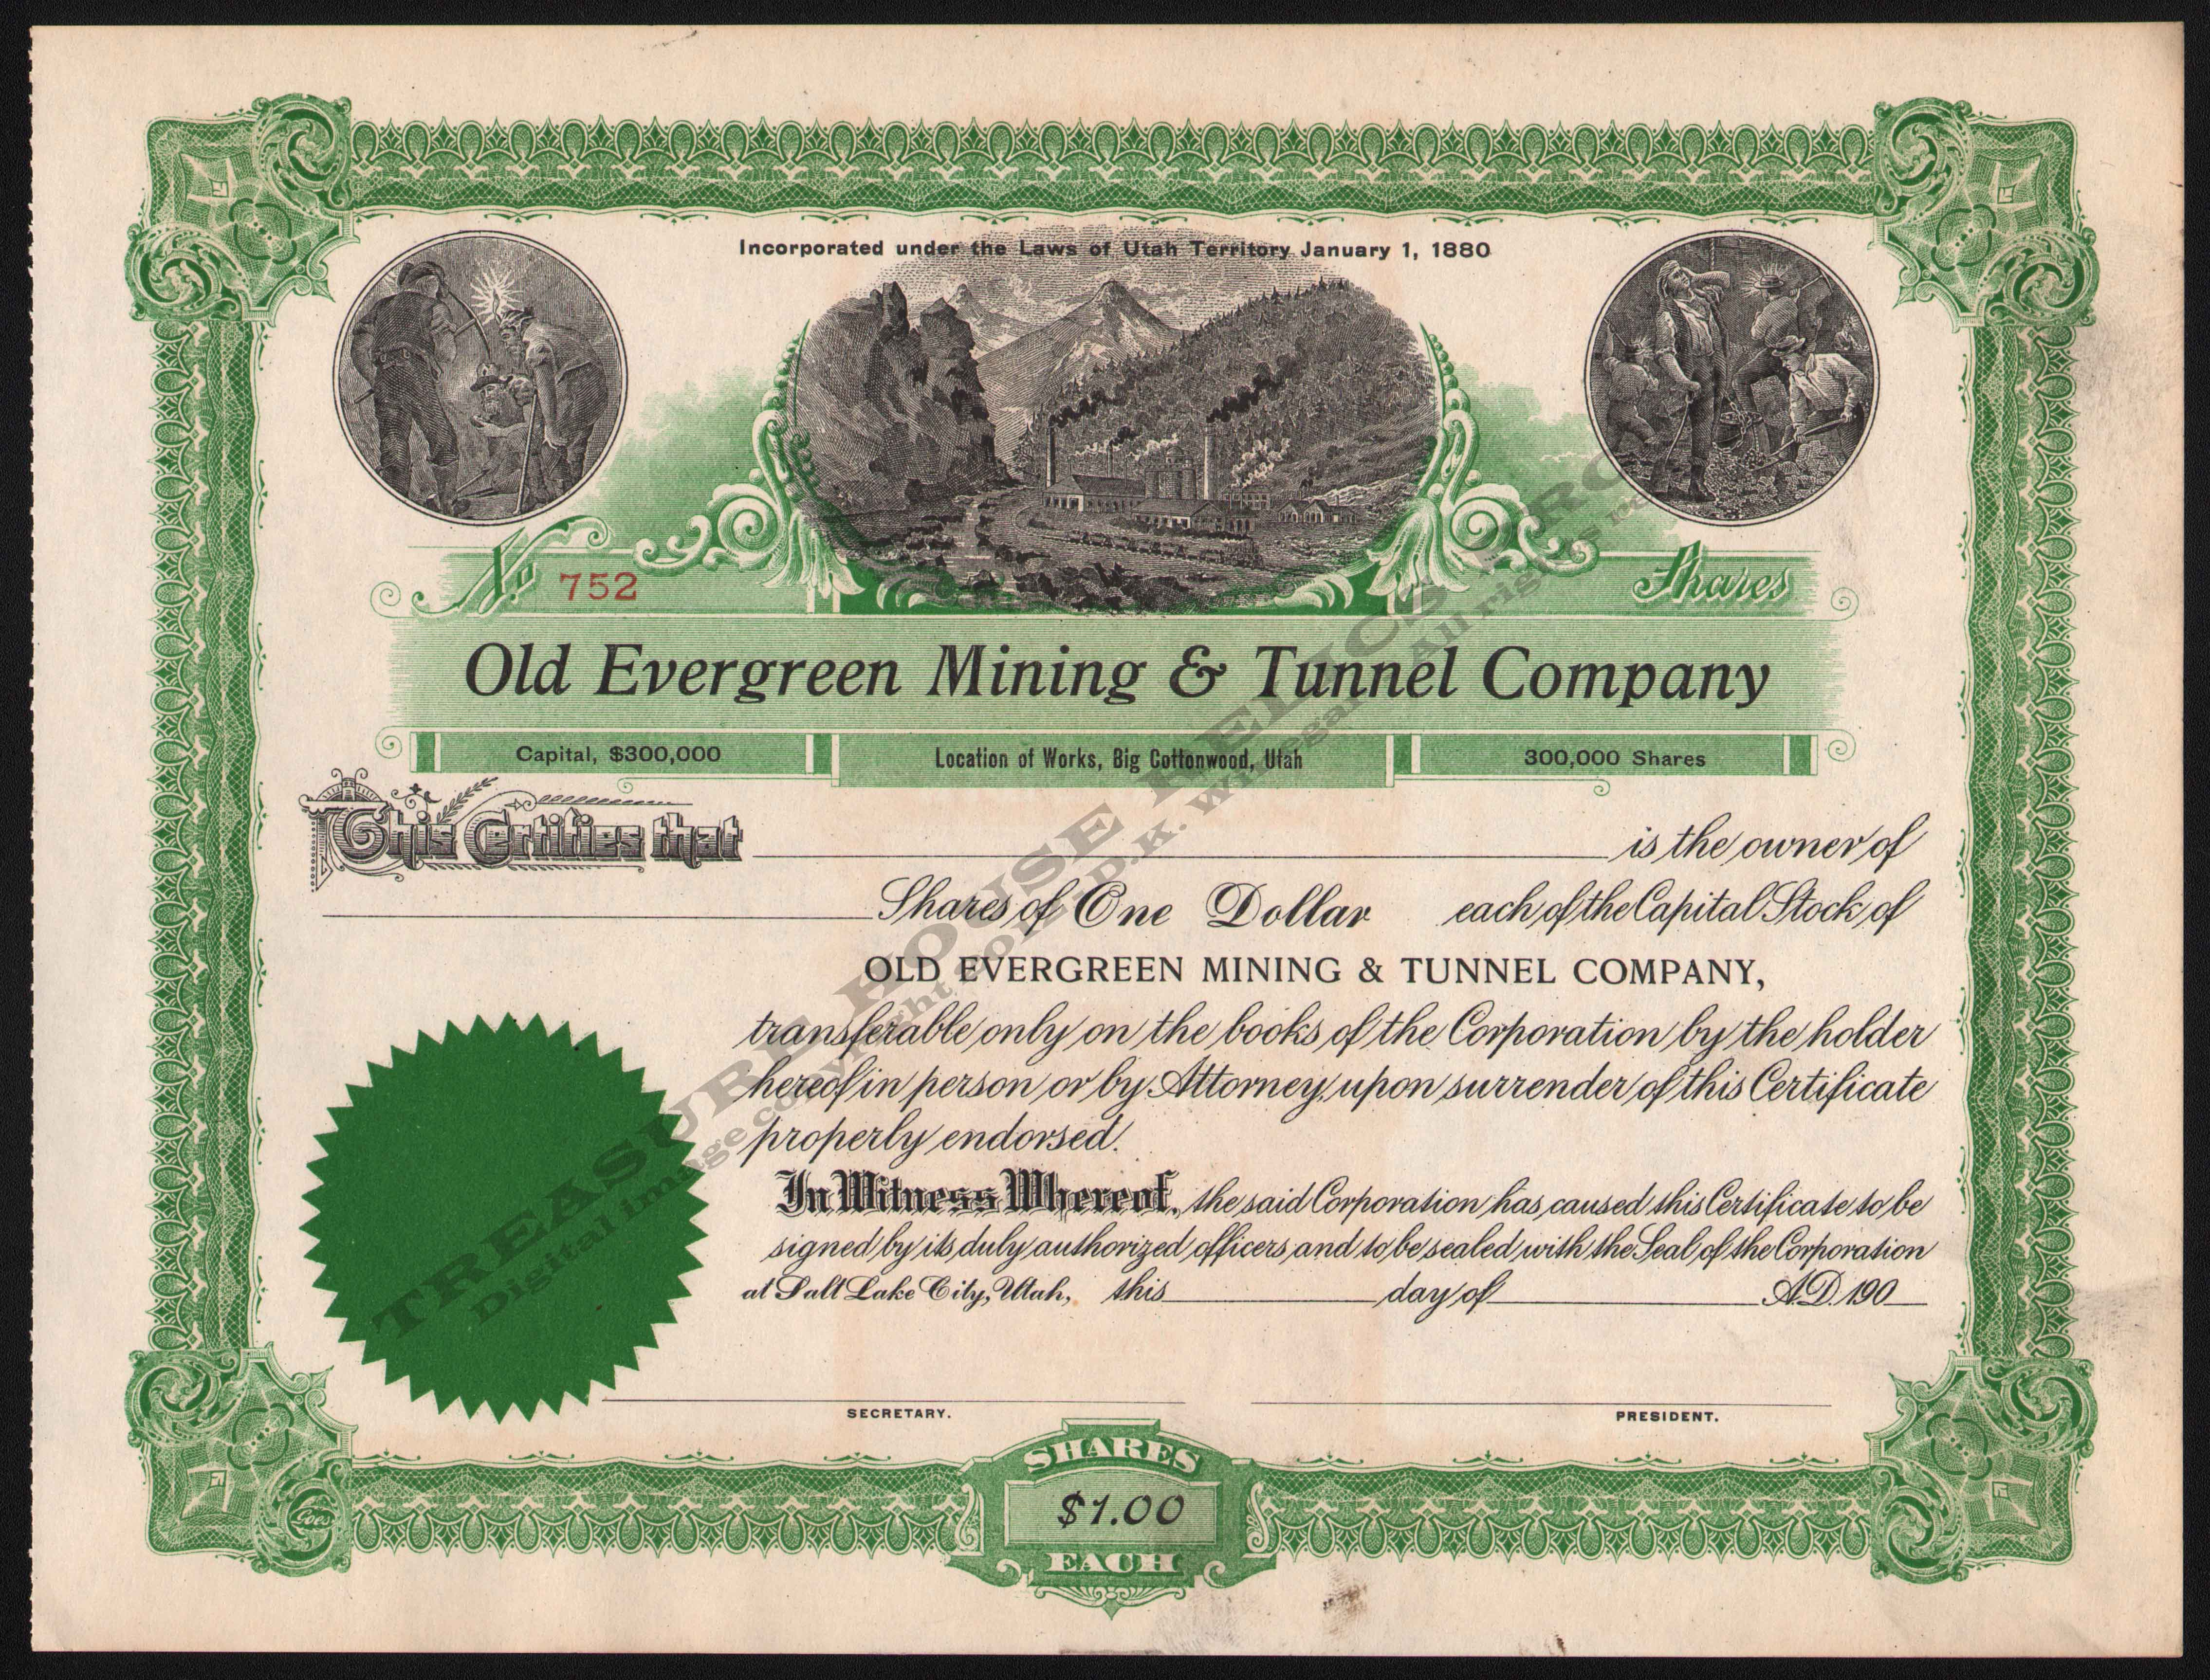 STOCK_OLD_EVERGREEN_MINING_TUNNEL_CO_752_190X_400_CROP_EMBOSS.jpg